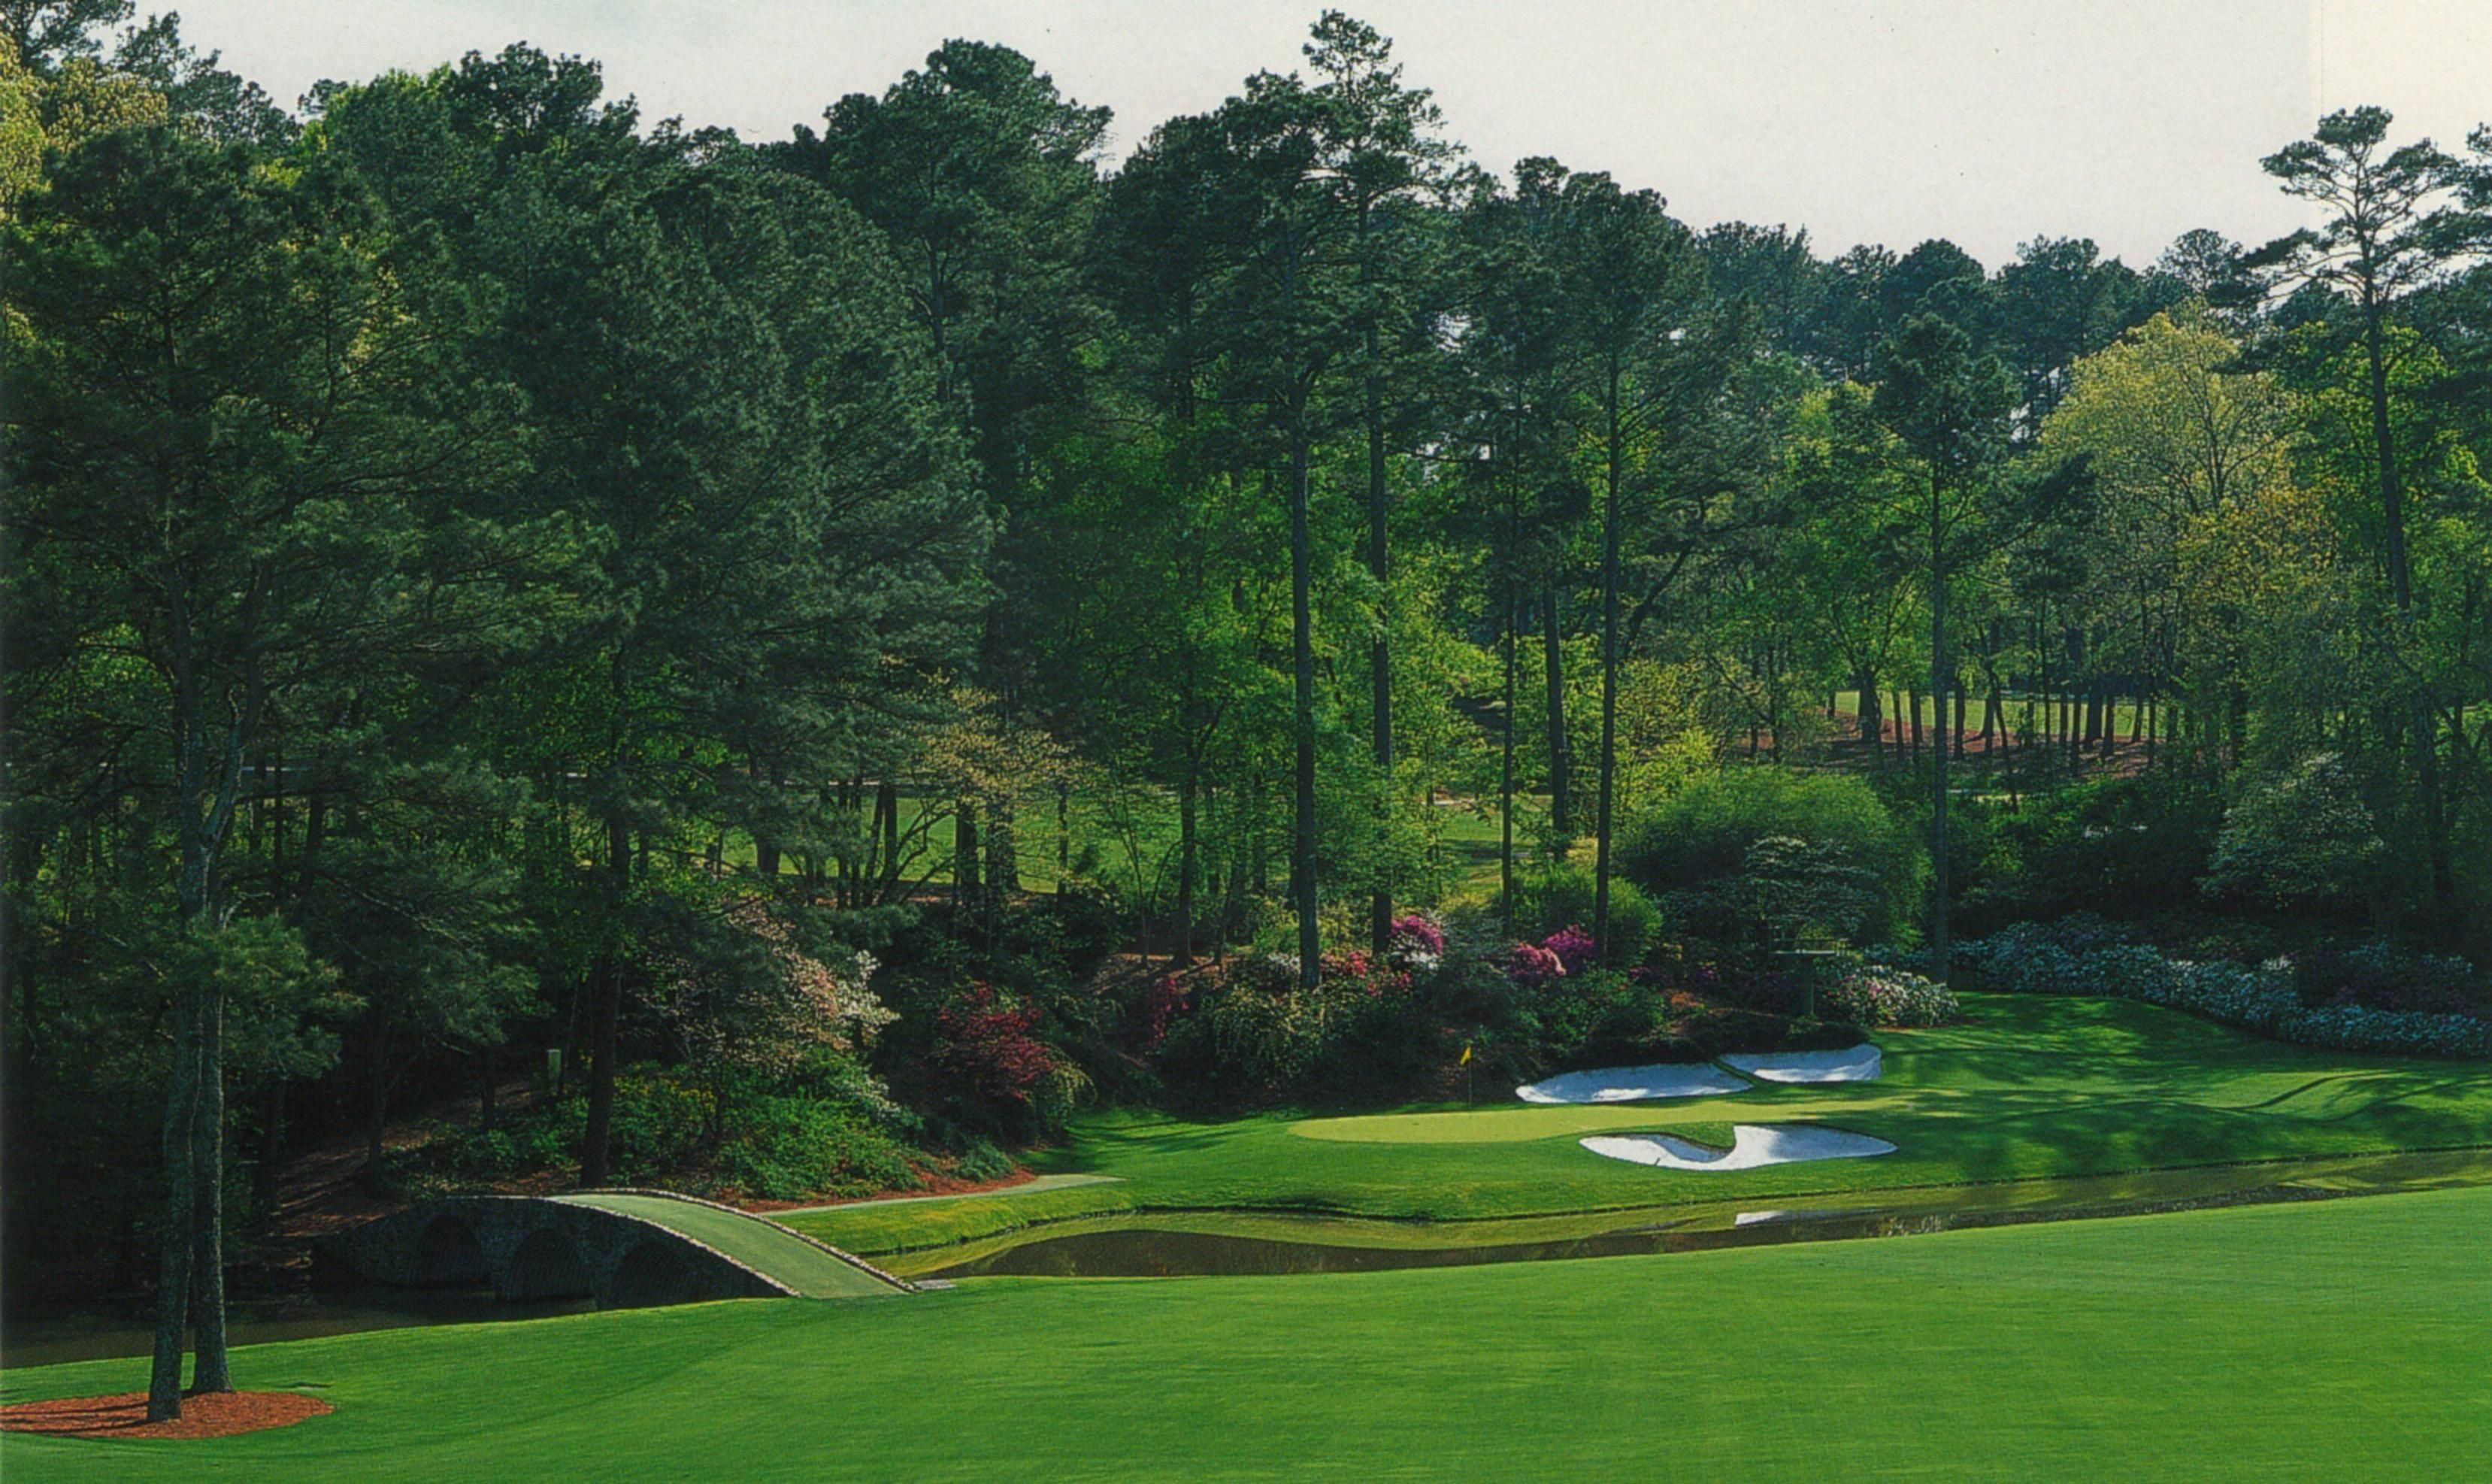 3315x1974 Augusta national wallpapers wallpaper cave epic car wallpapers pinterest  jpg  Masters wallpapercave golf course wallpaper